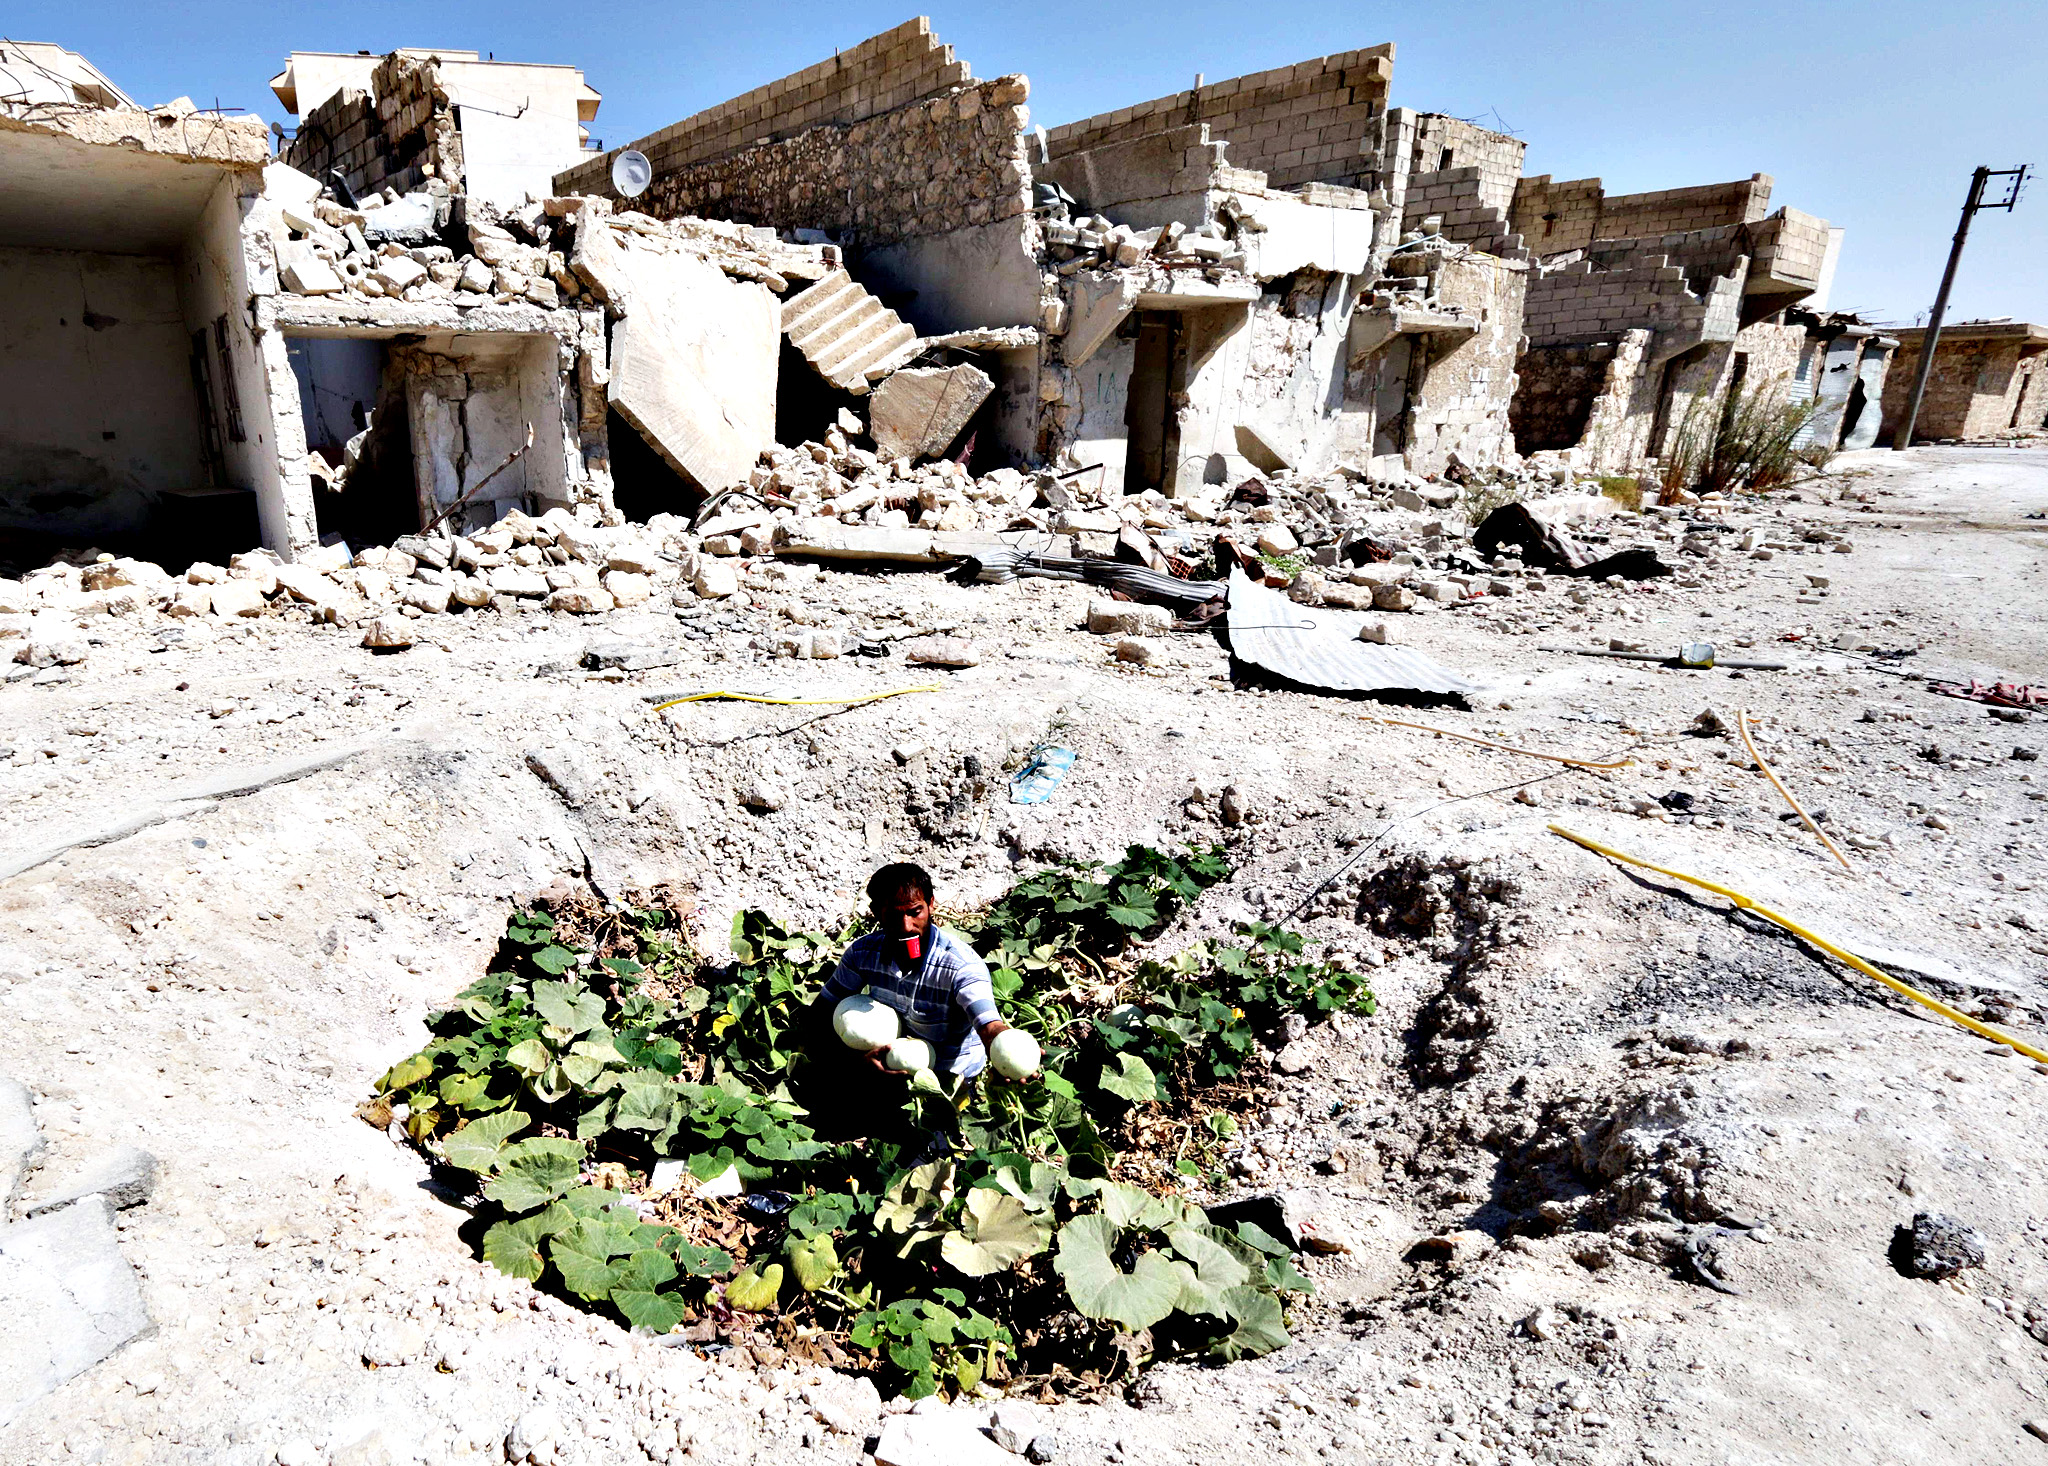 A Syrian man collects vegetables from a vegetable patch locals grew at the site where a barrel bomb hit a sewage pipe in the Baedeen neighbourhood of the northern Syrian city of Aleppo on September 3, 2014. Aleppo province has been subject to a particularly fierce regime aerial campaign, including the use of explosive-packed barrel bombs tossed from regime helicopters that rights groups say kill indiscriminately.